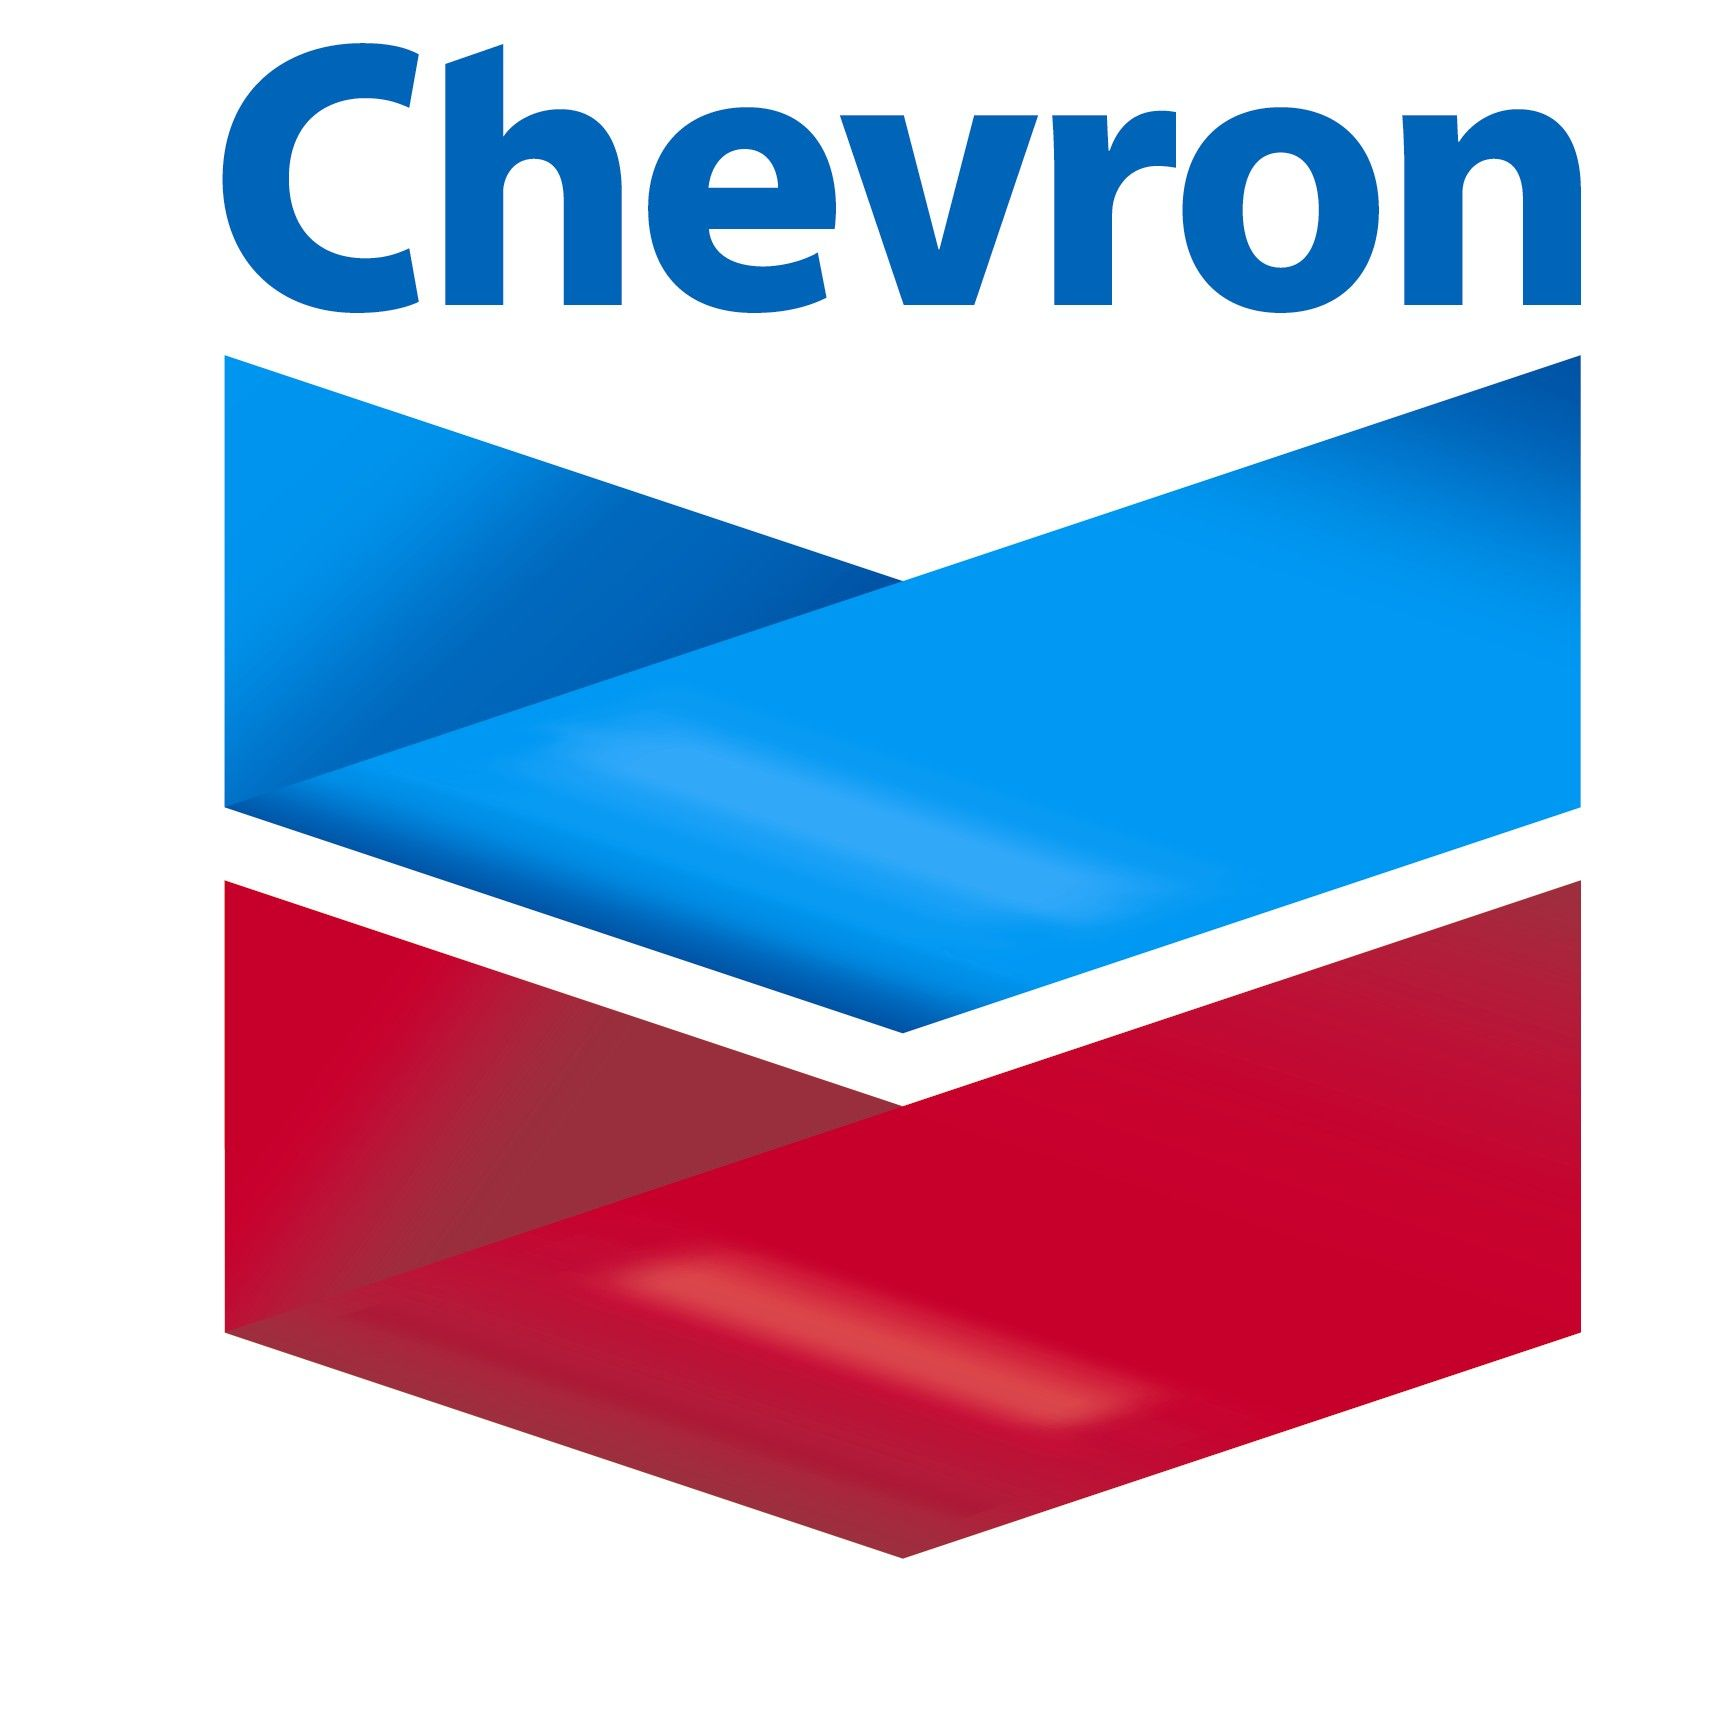 Gas Station Logo - Pix For > Gas Station Logos | Gas Station Logos | Chevron, Logos ...